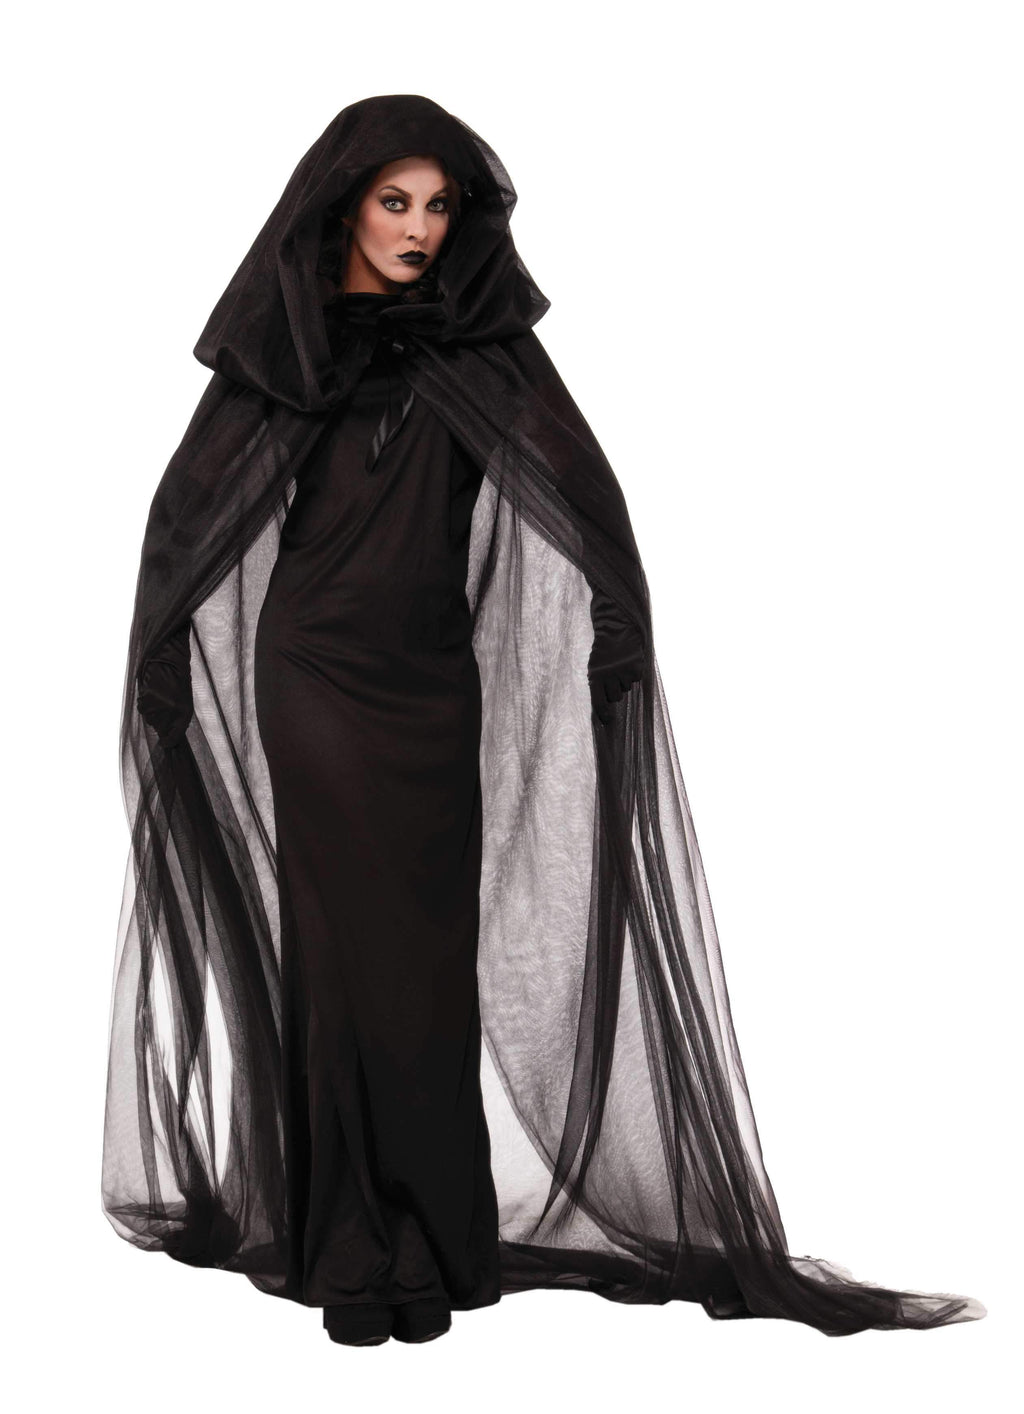 Black Haunted Cape Halloween Costume-FREE SHIPPING - Blanche's Place